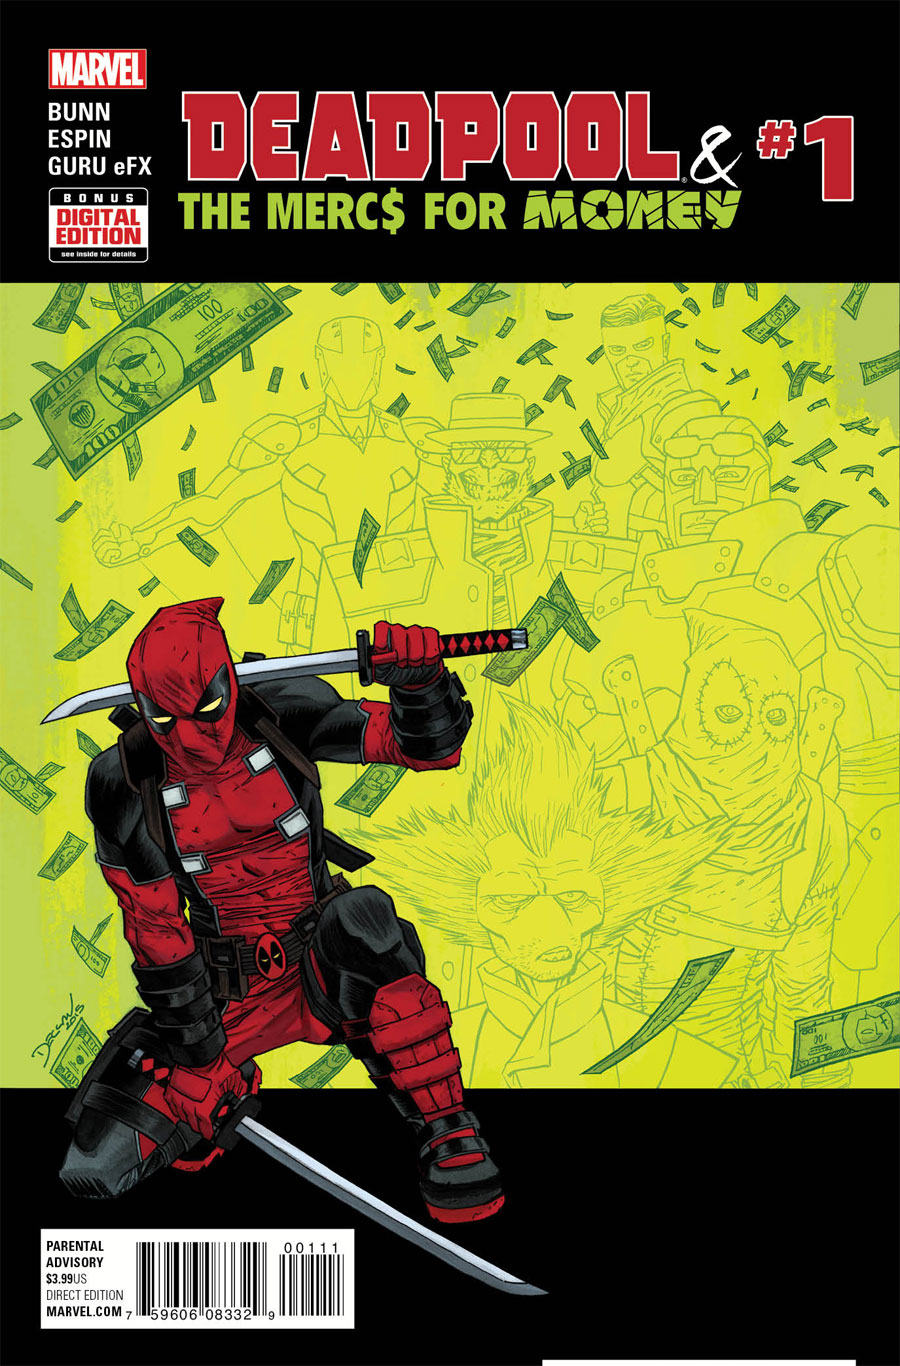 Deadpool & The Mercs for Money #1